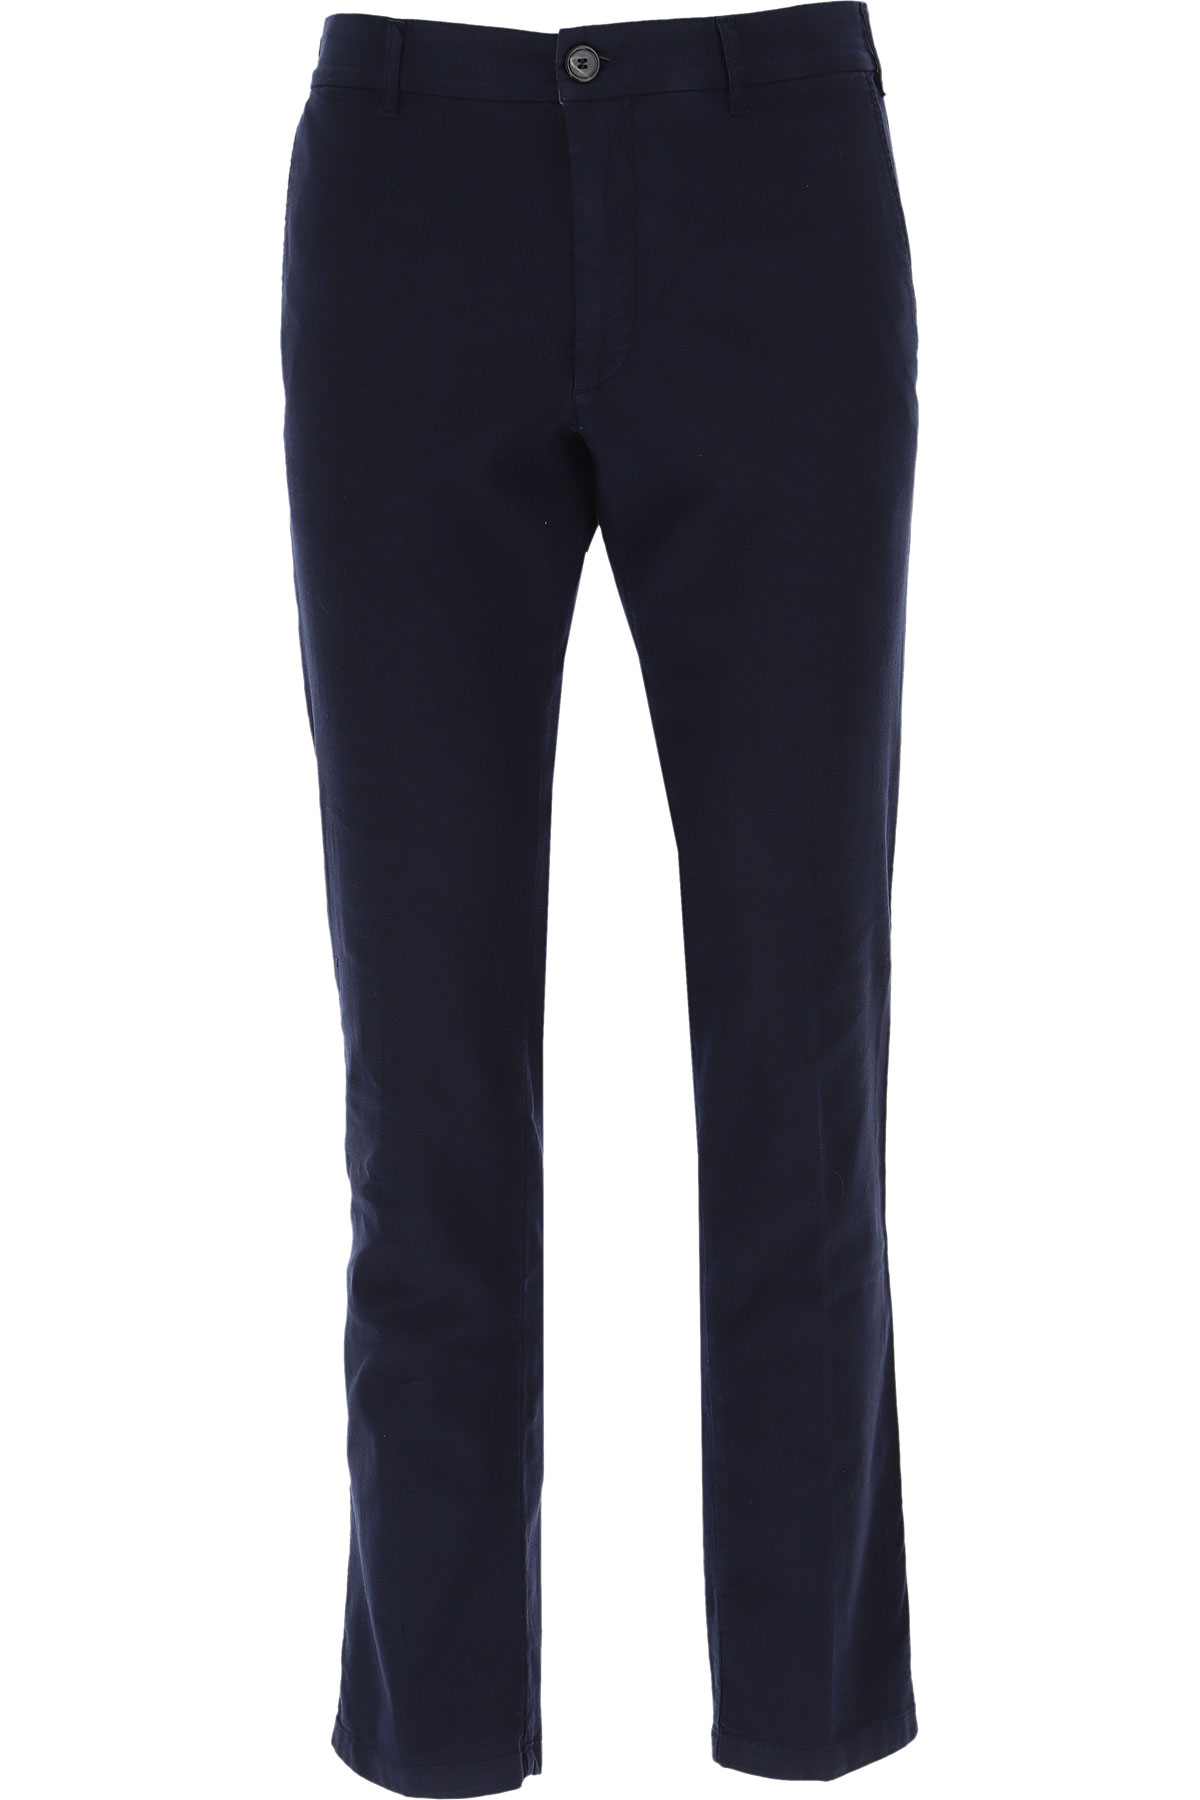 J.W. Brine Pants for Men On Sale, Navy Blue, Cotton, 2019, 32 34 36 38